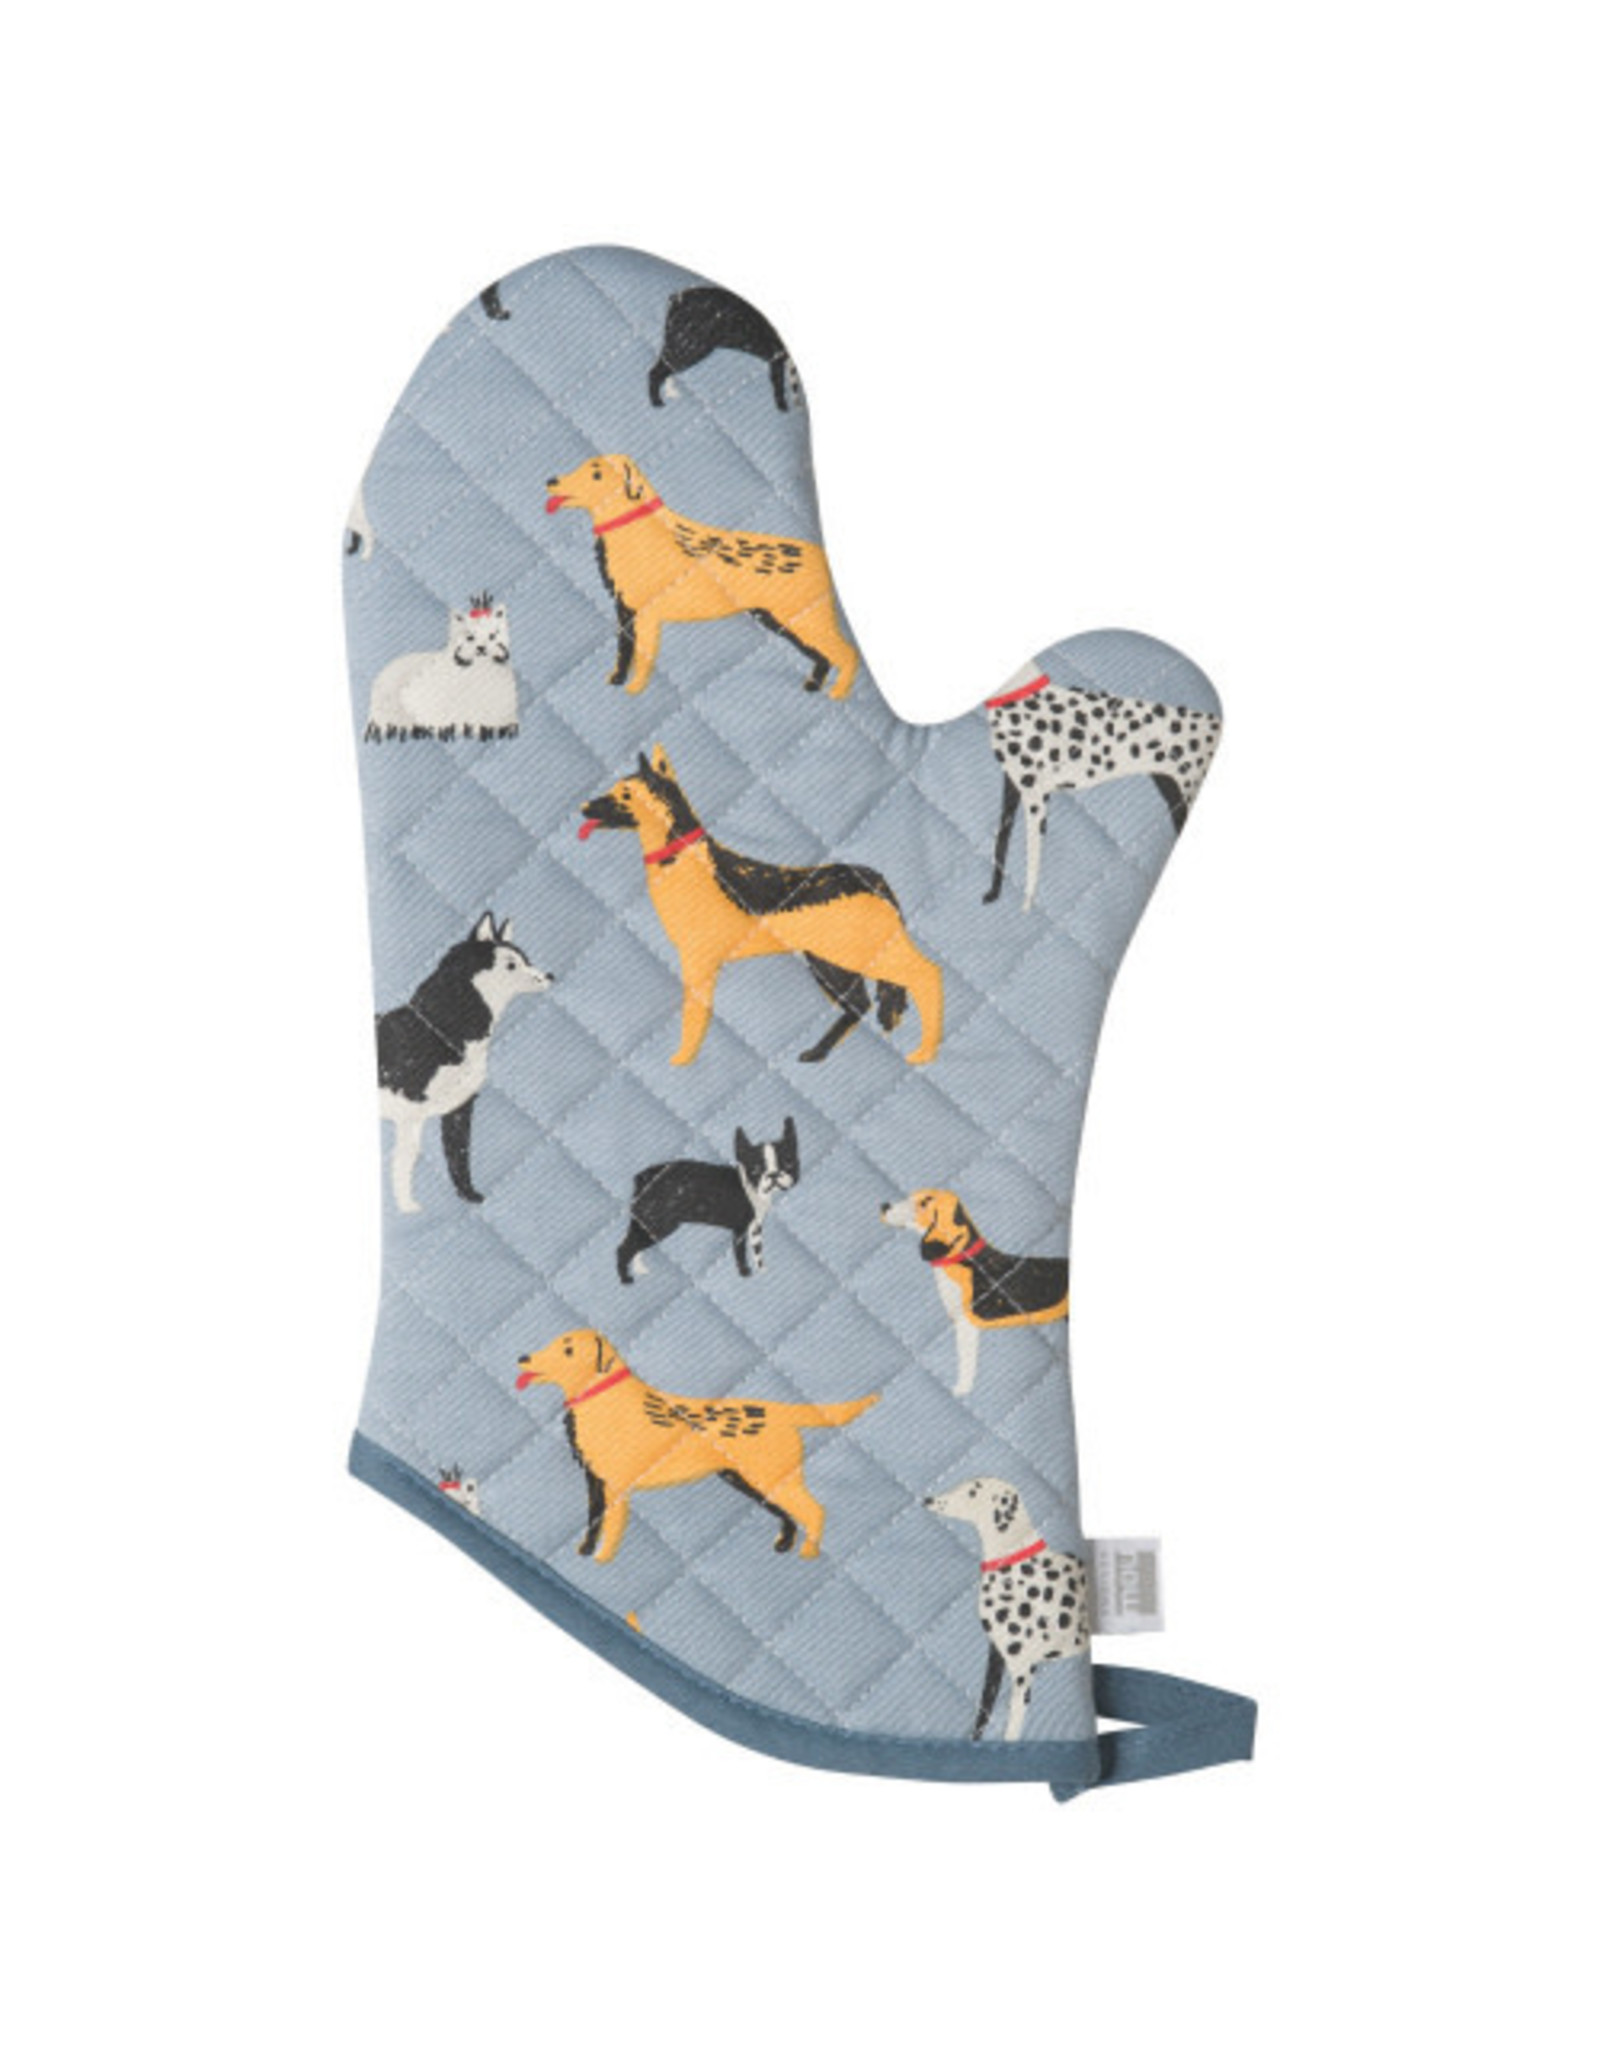 Dog Days Oven Mitts Set of 2